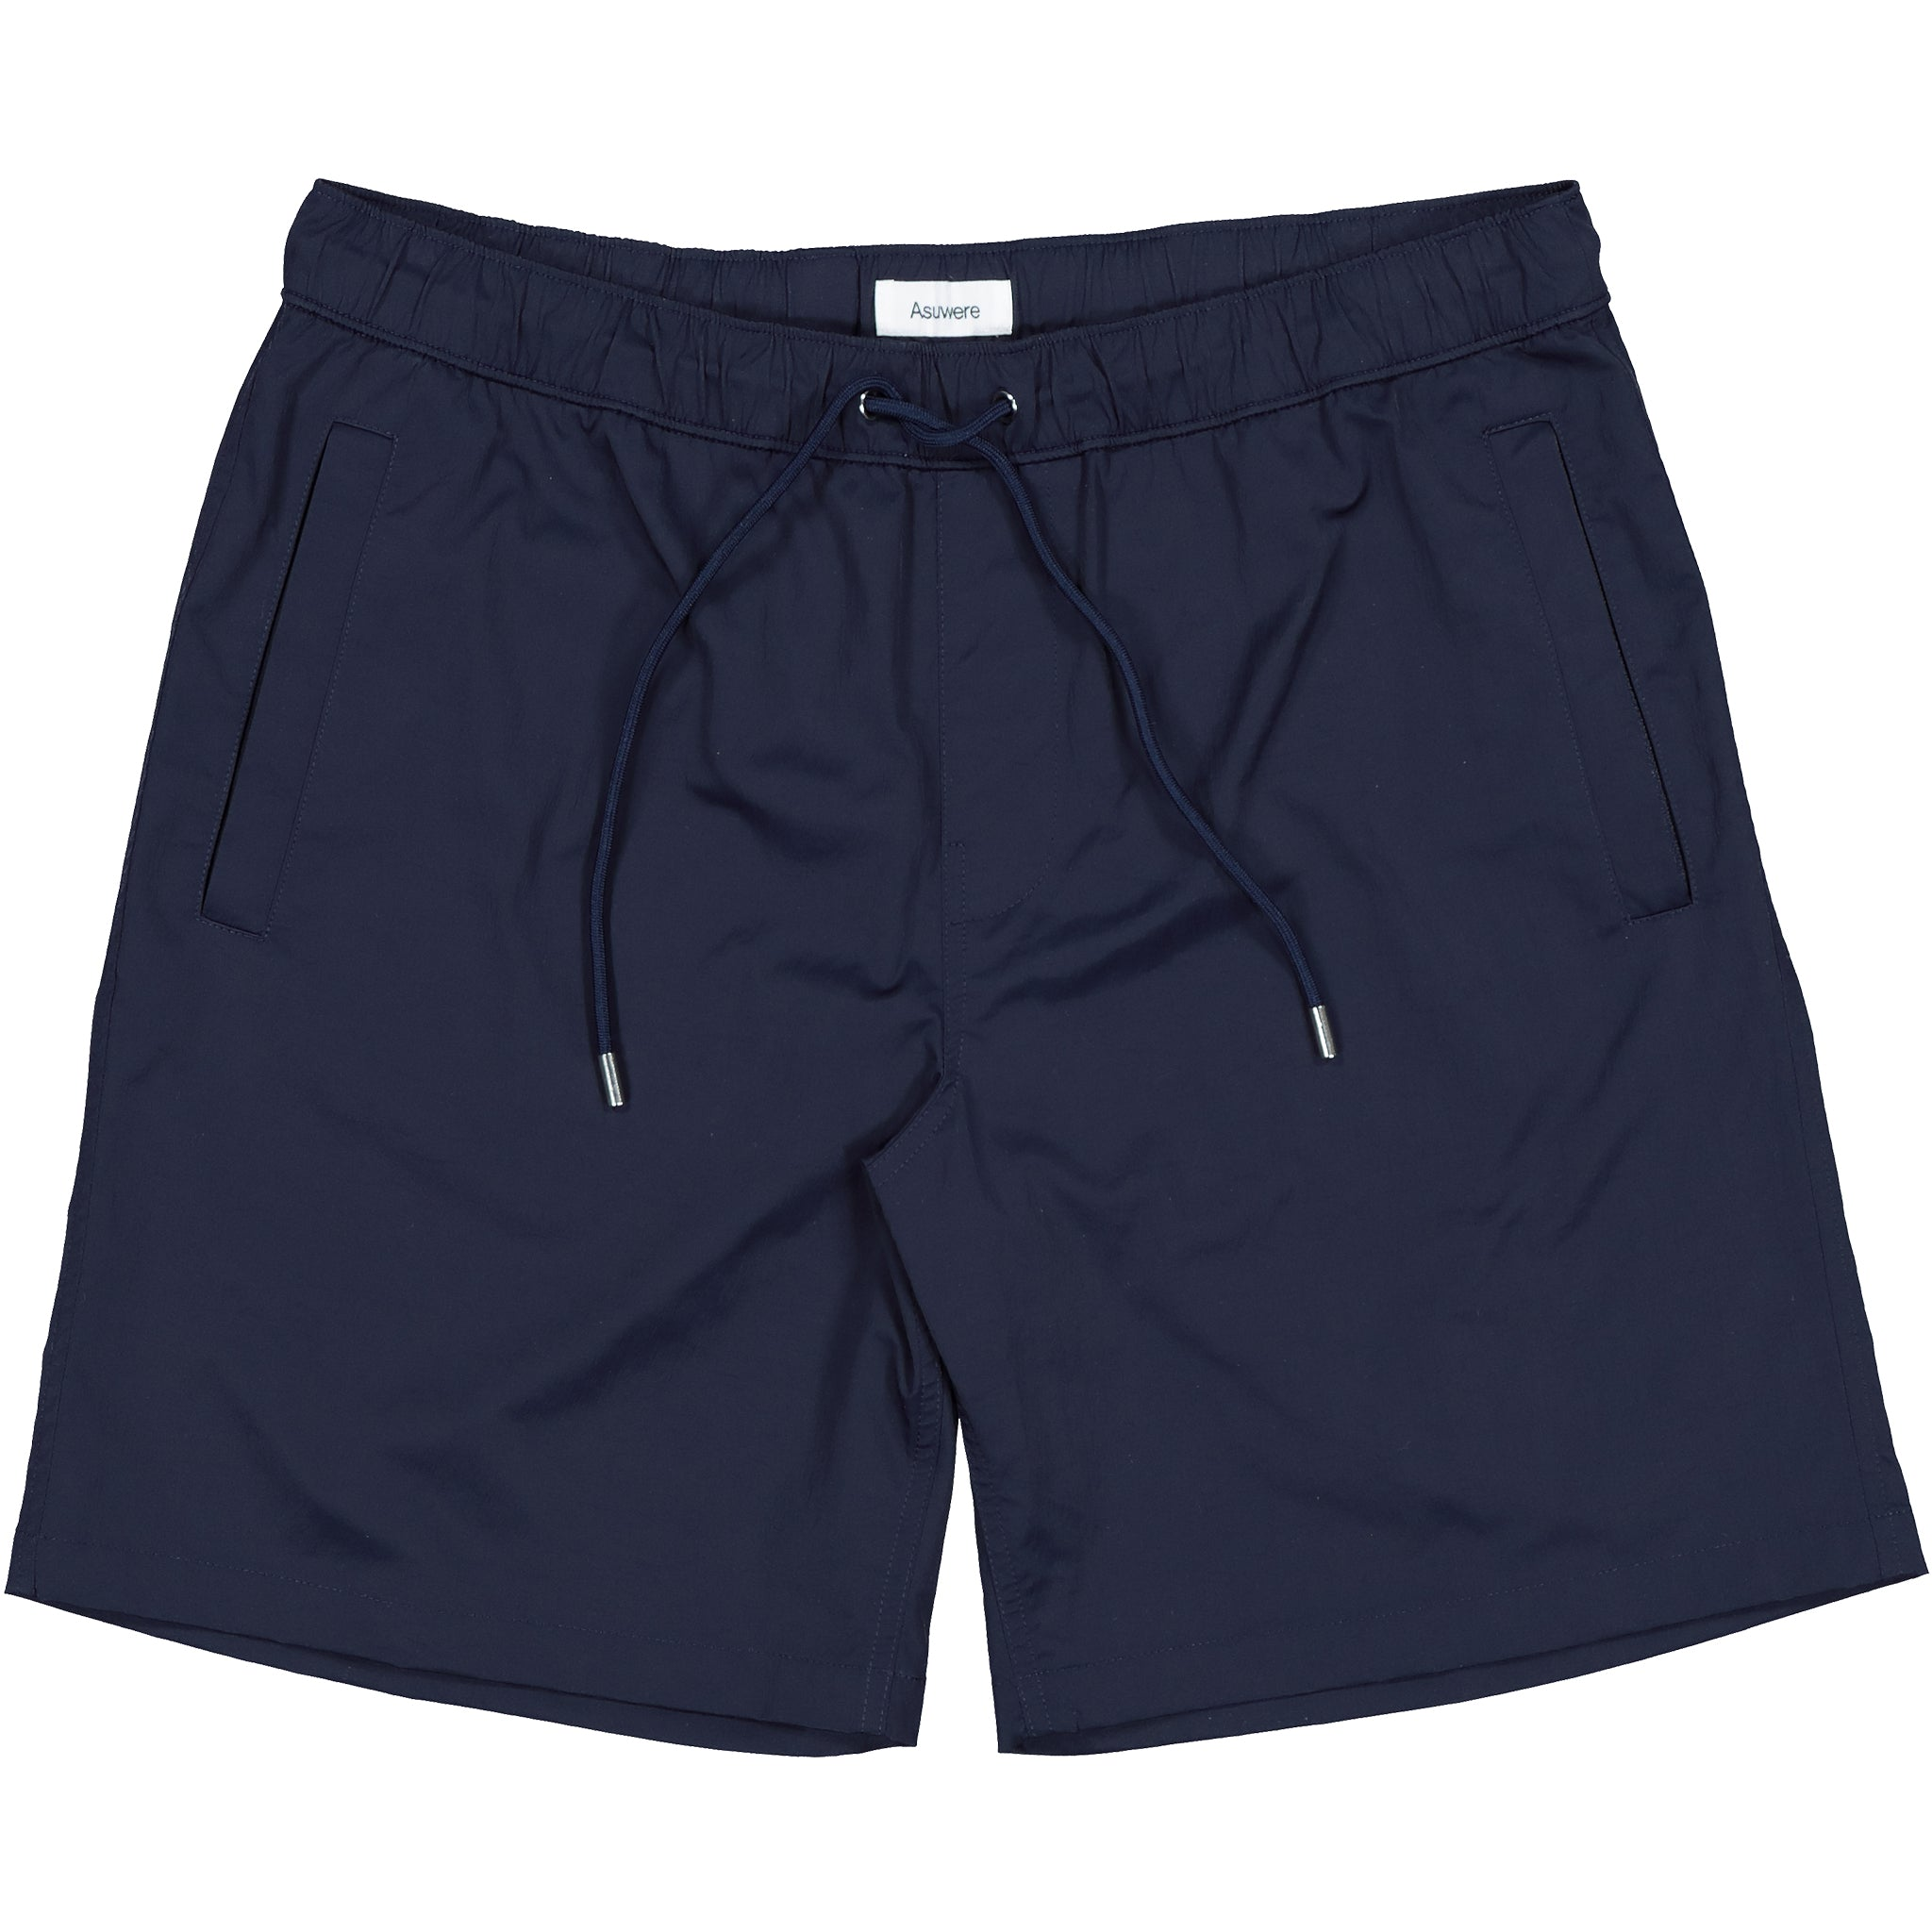 Lounger short - Navy